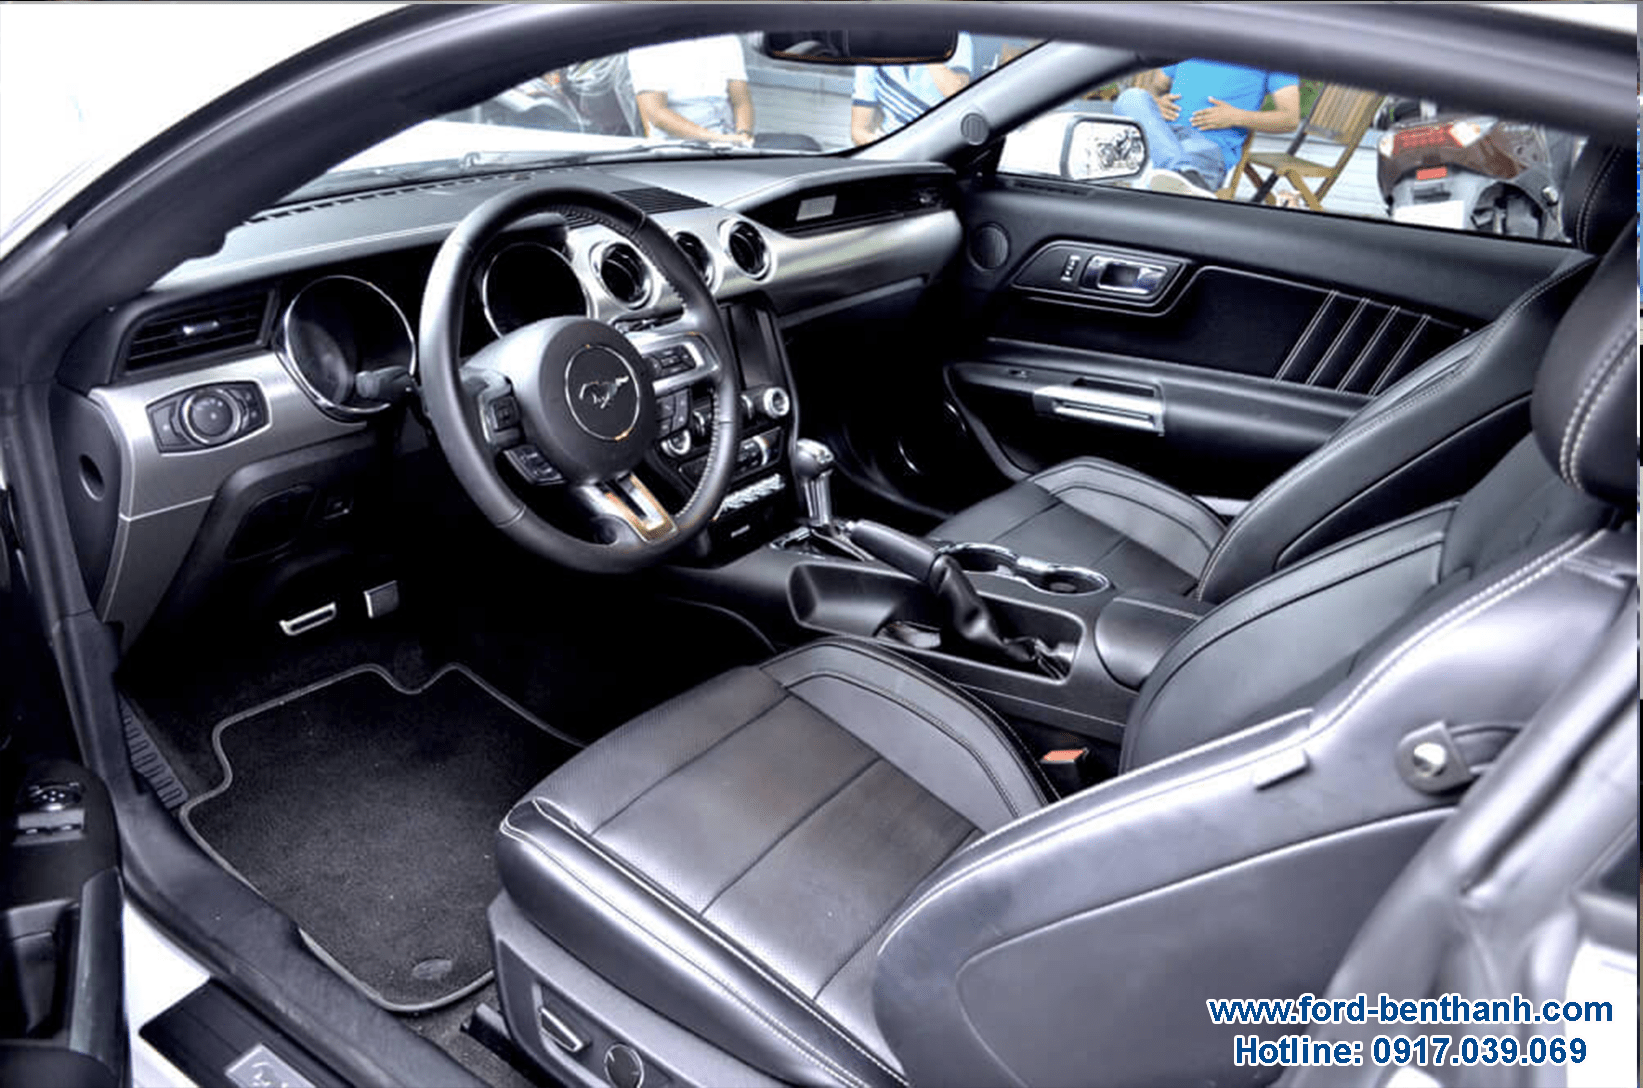 ford-mustang-ford-benthanh-0917039069-6